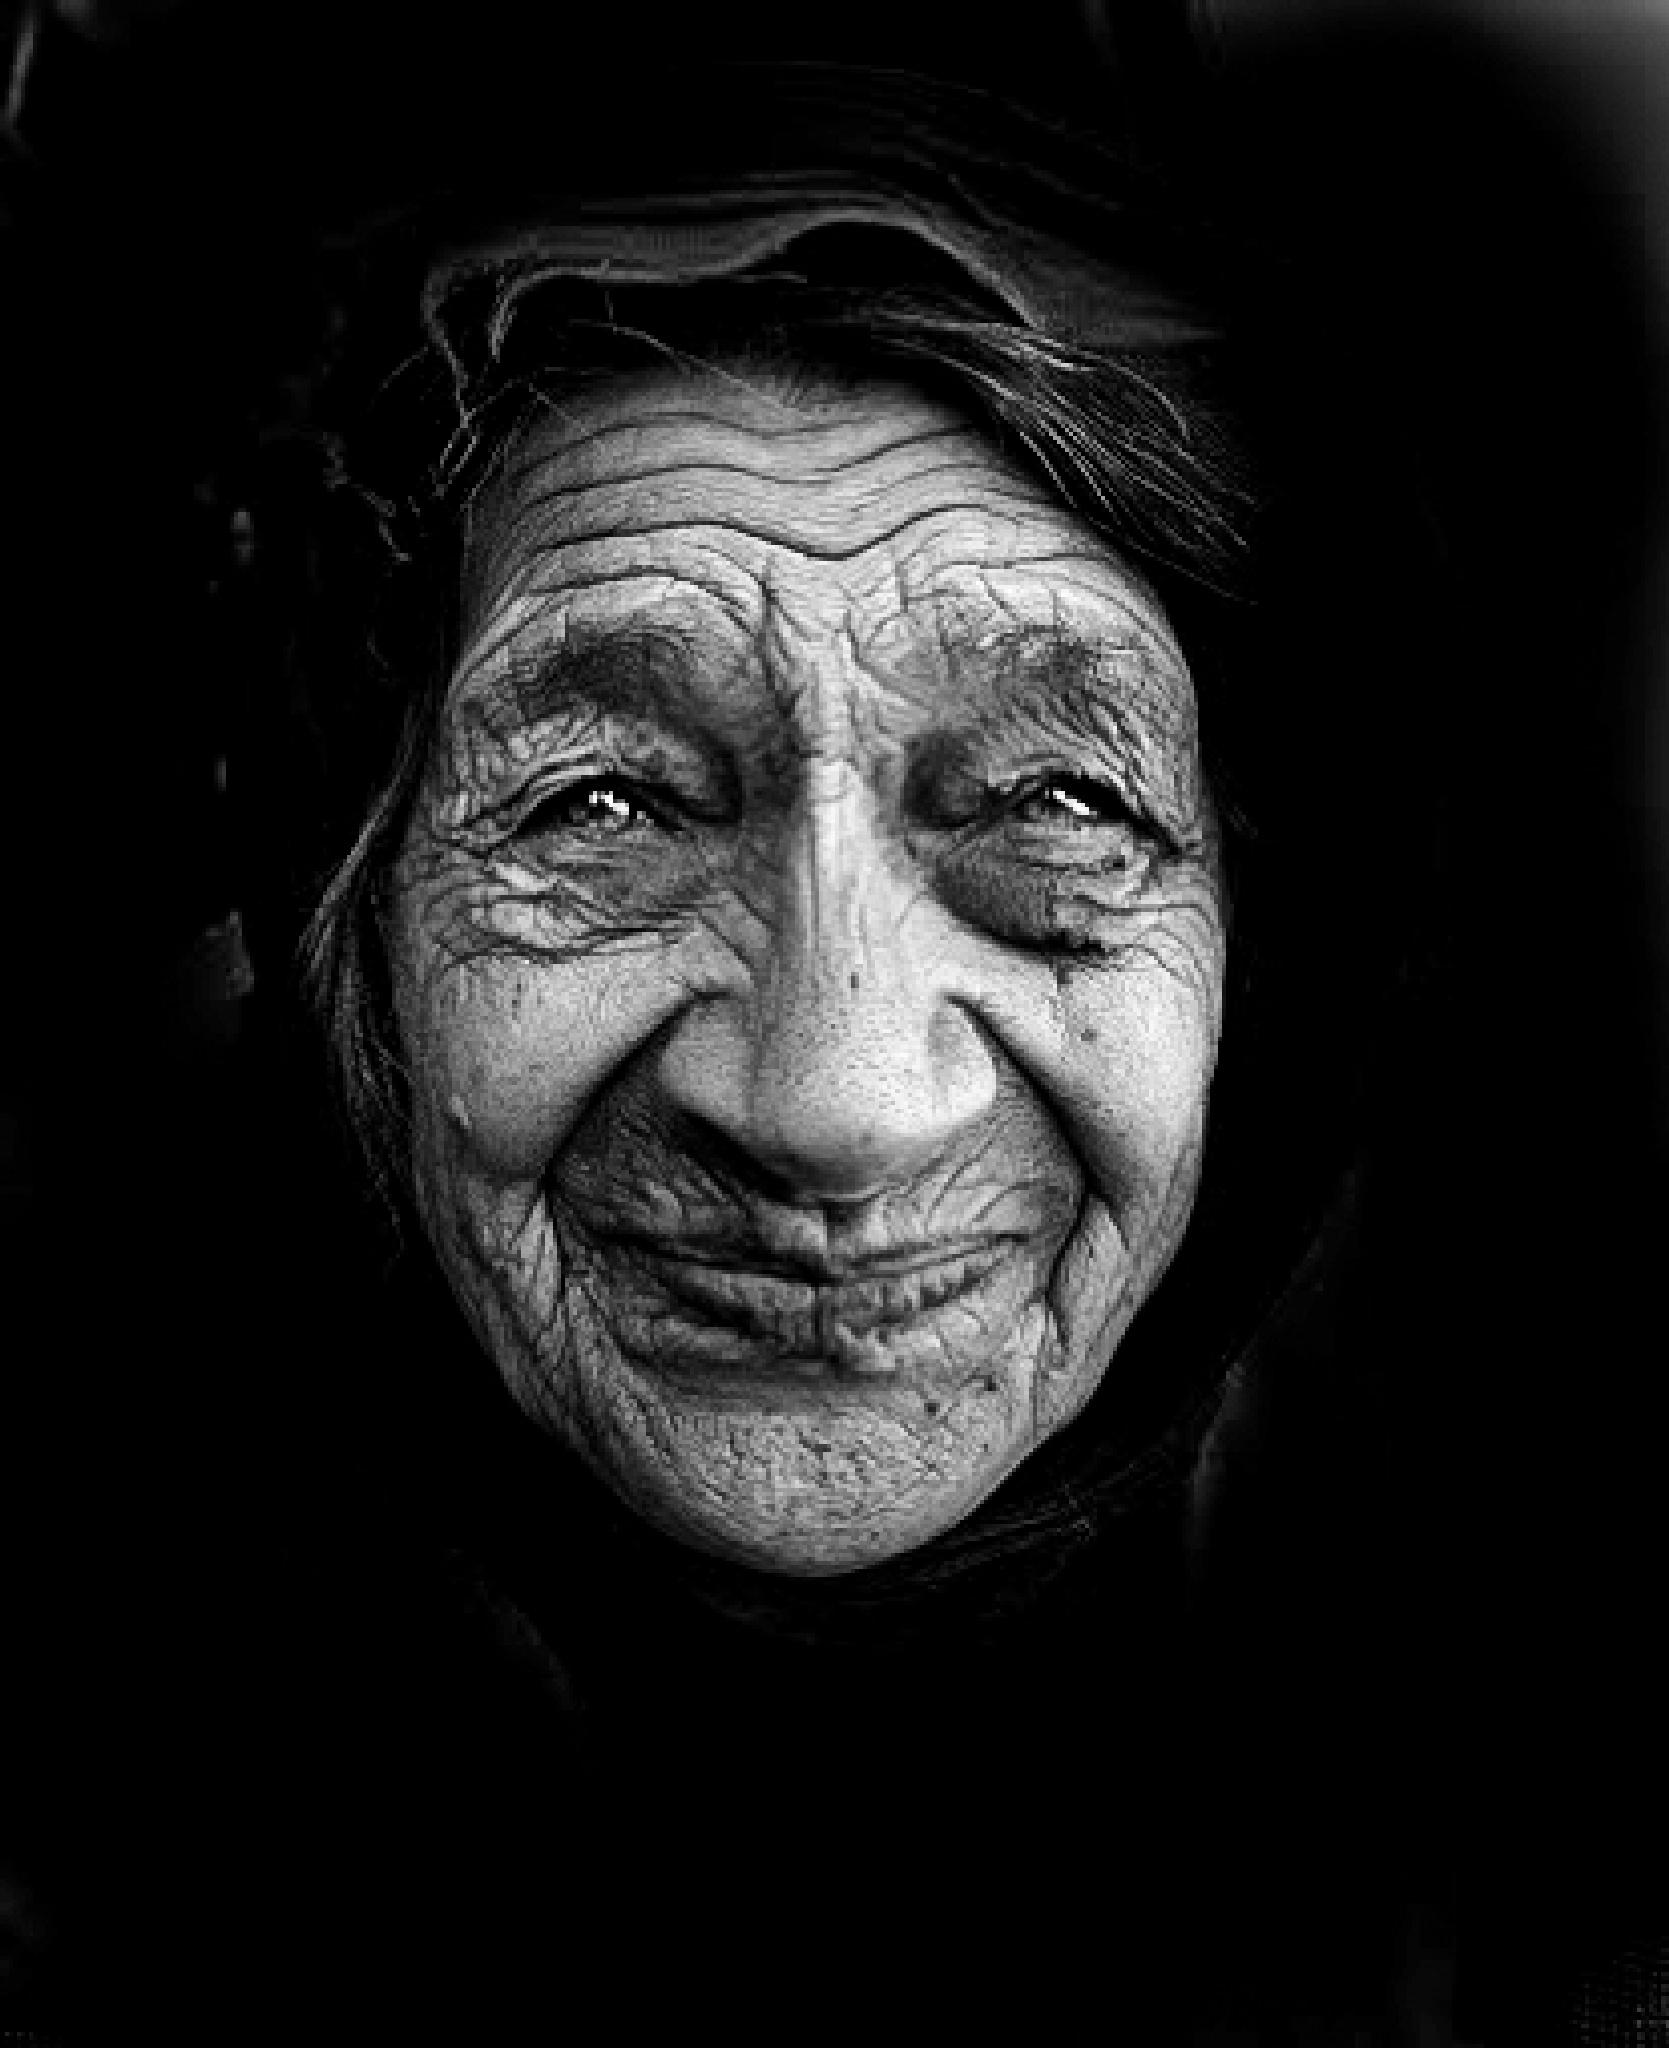 Old Woman 1 by Serge Kay